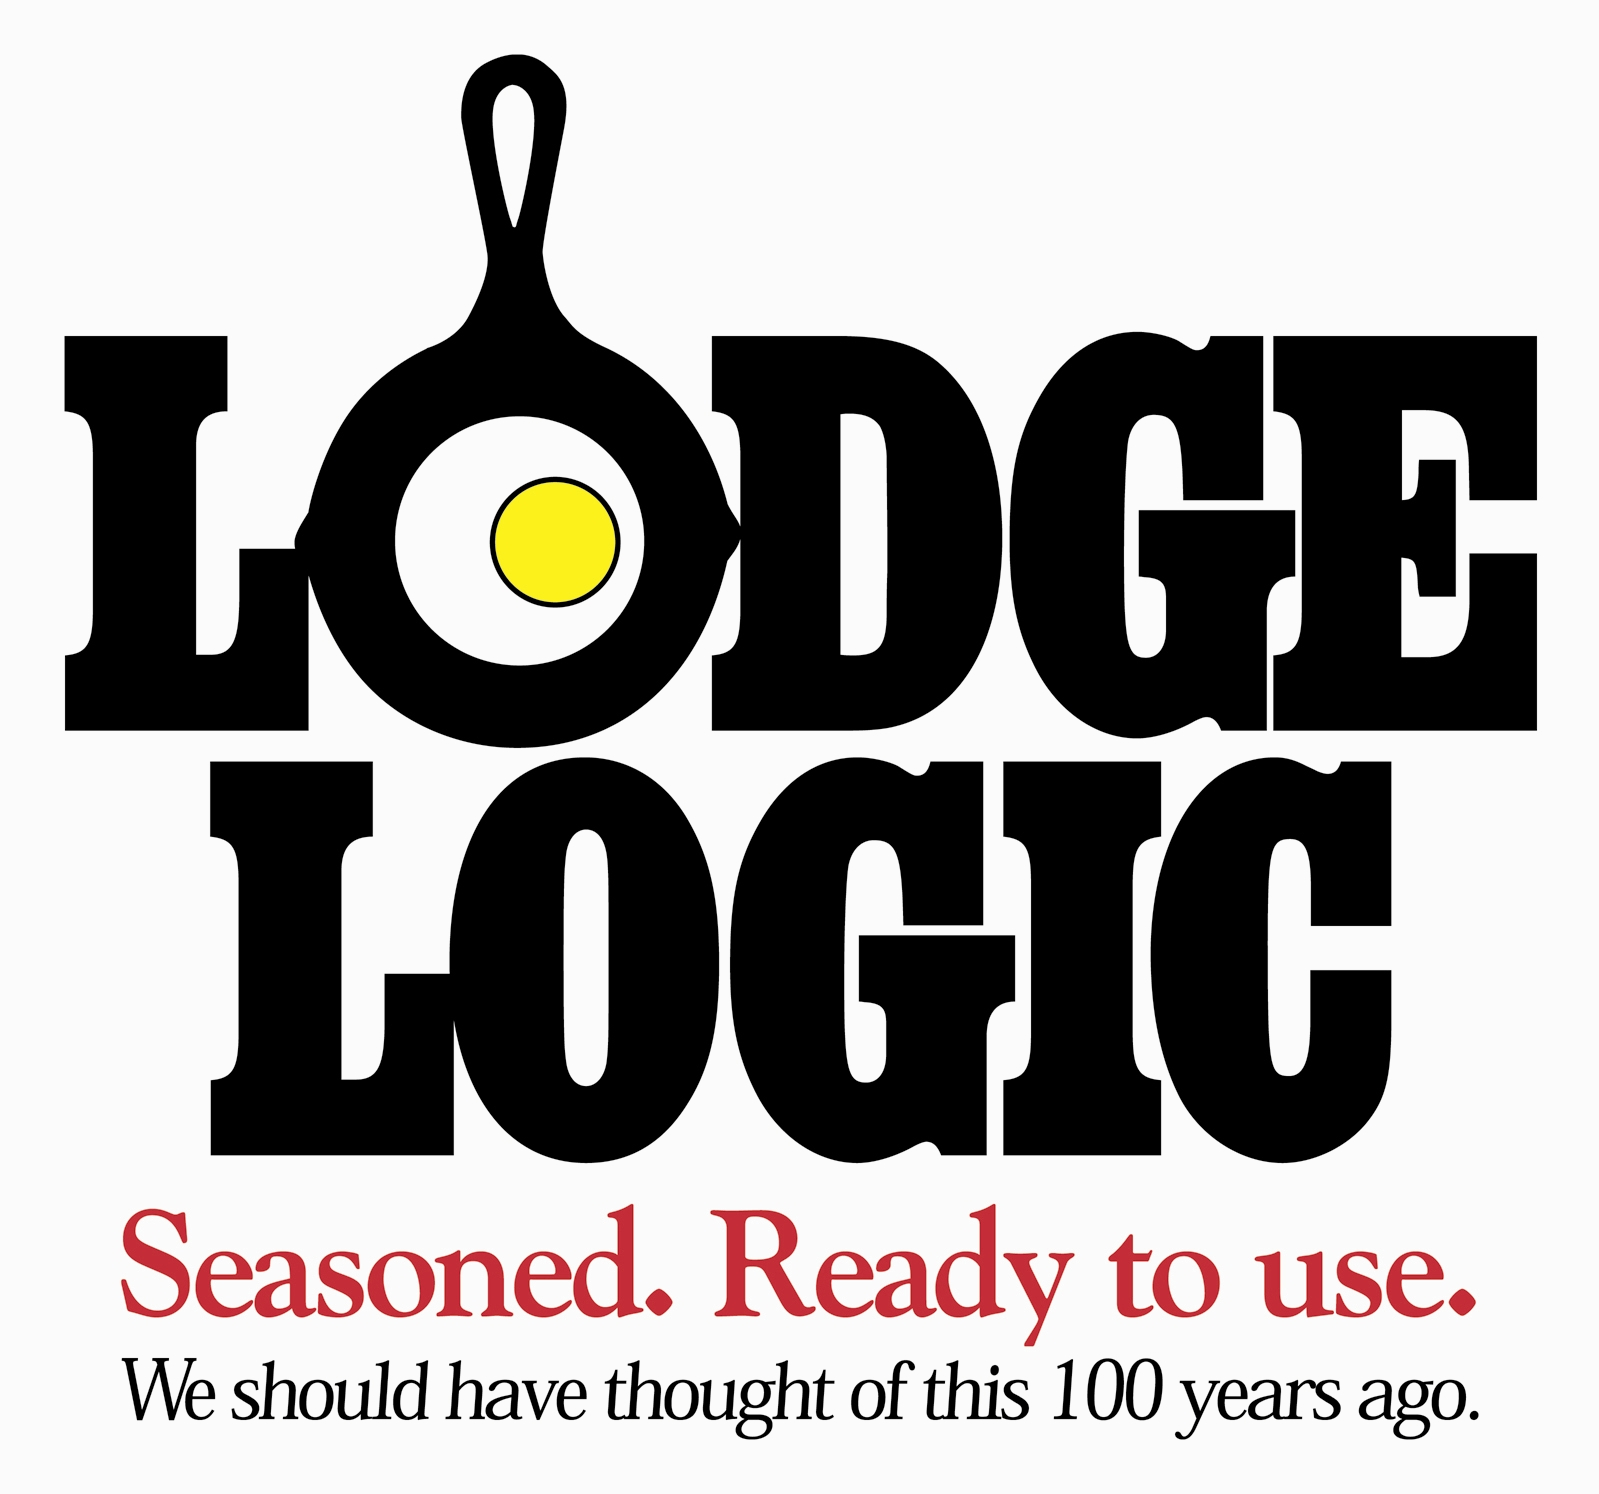 Lodge Logic